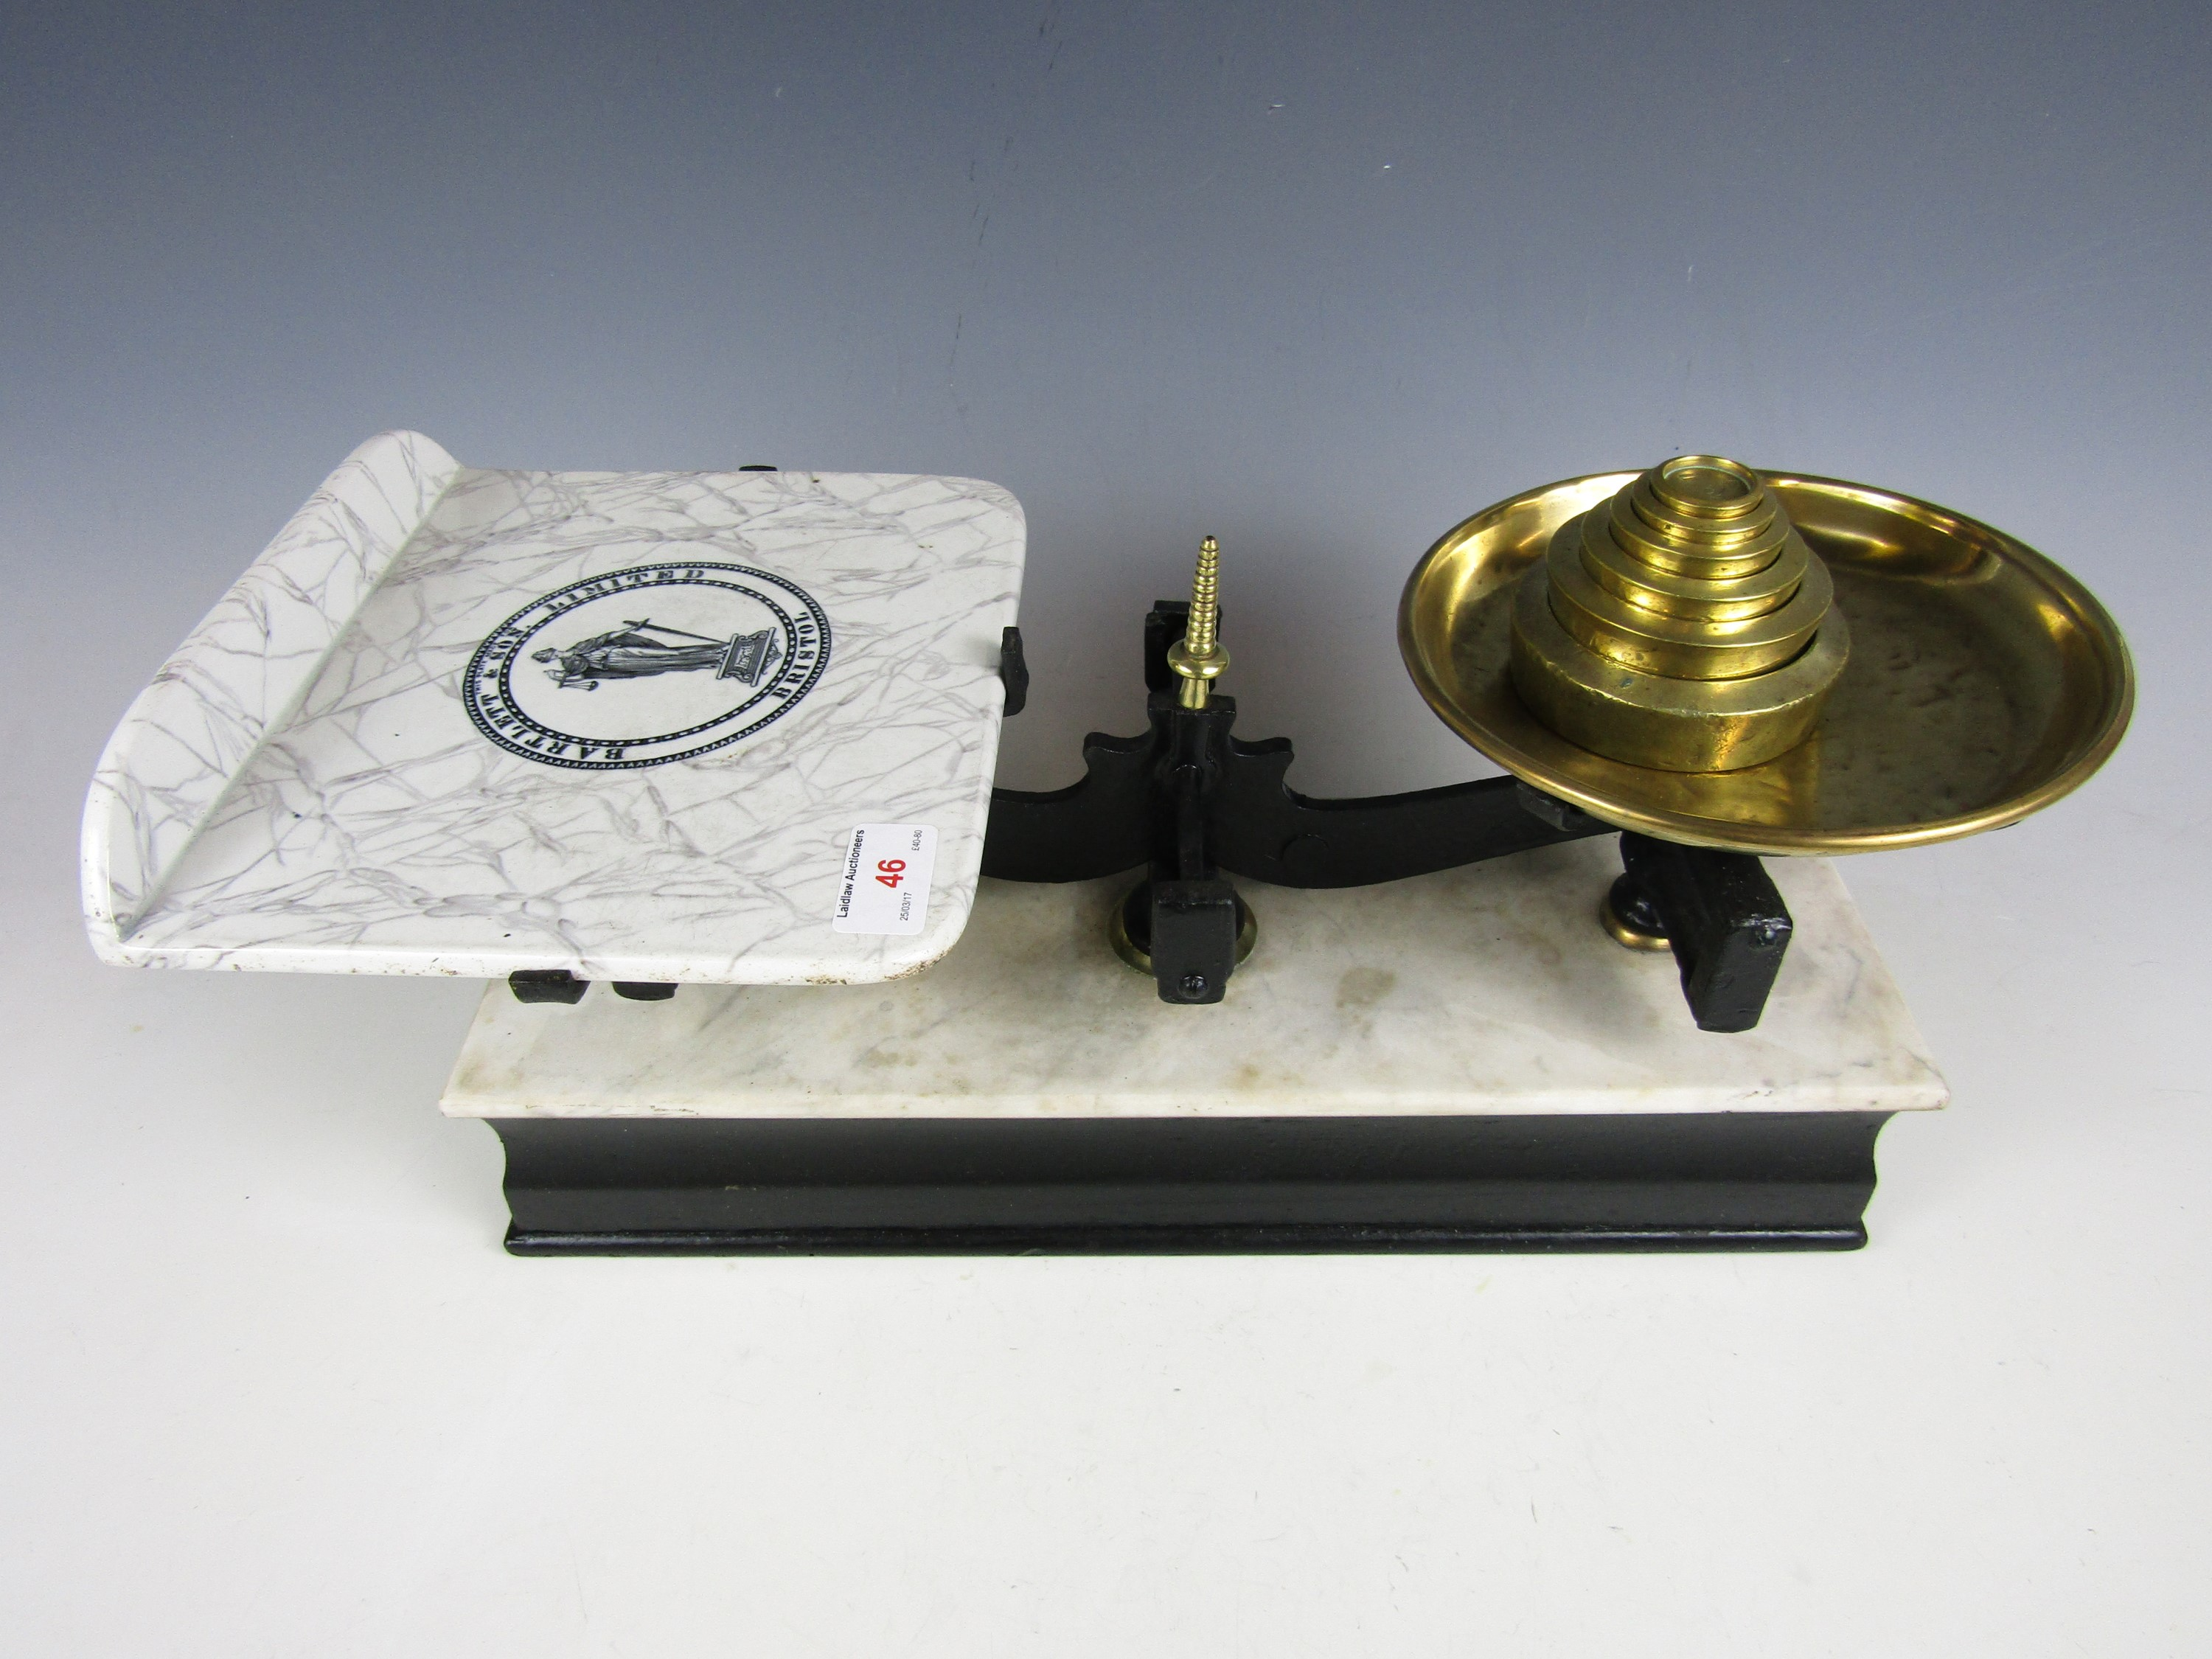 Lot 46 - A Bartlett & Son Ltd set of balance scales with weights